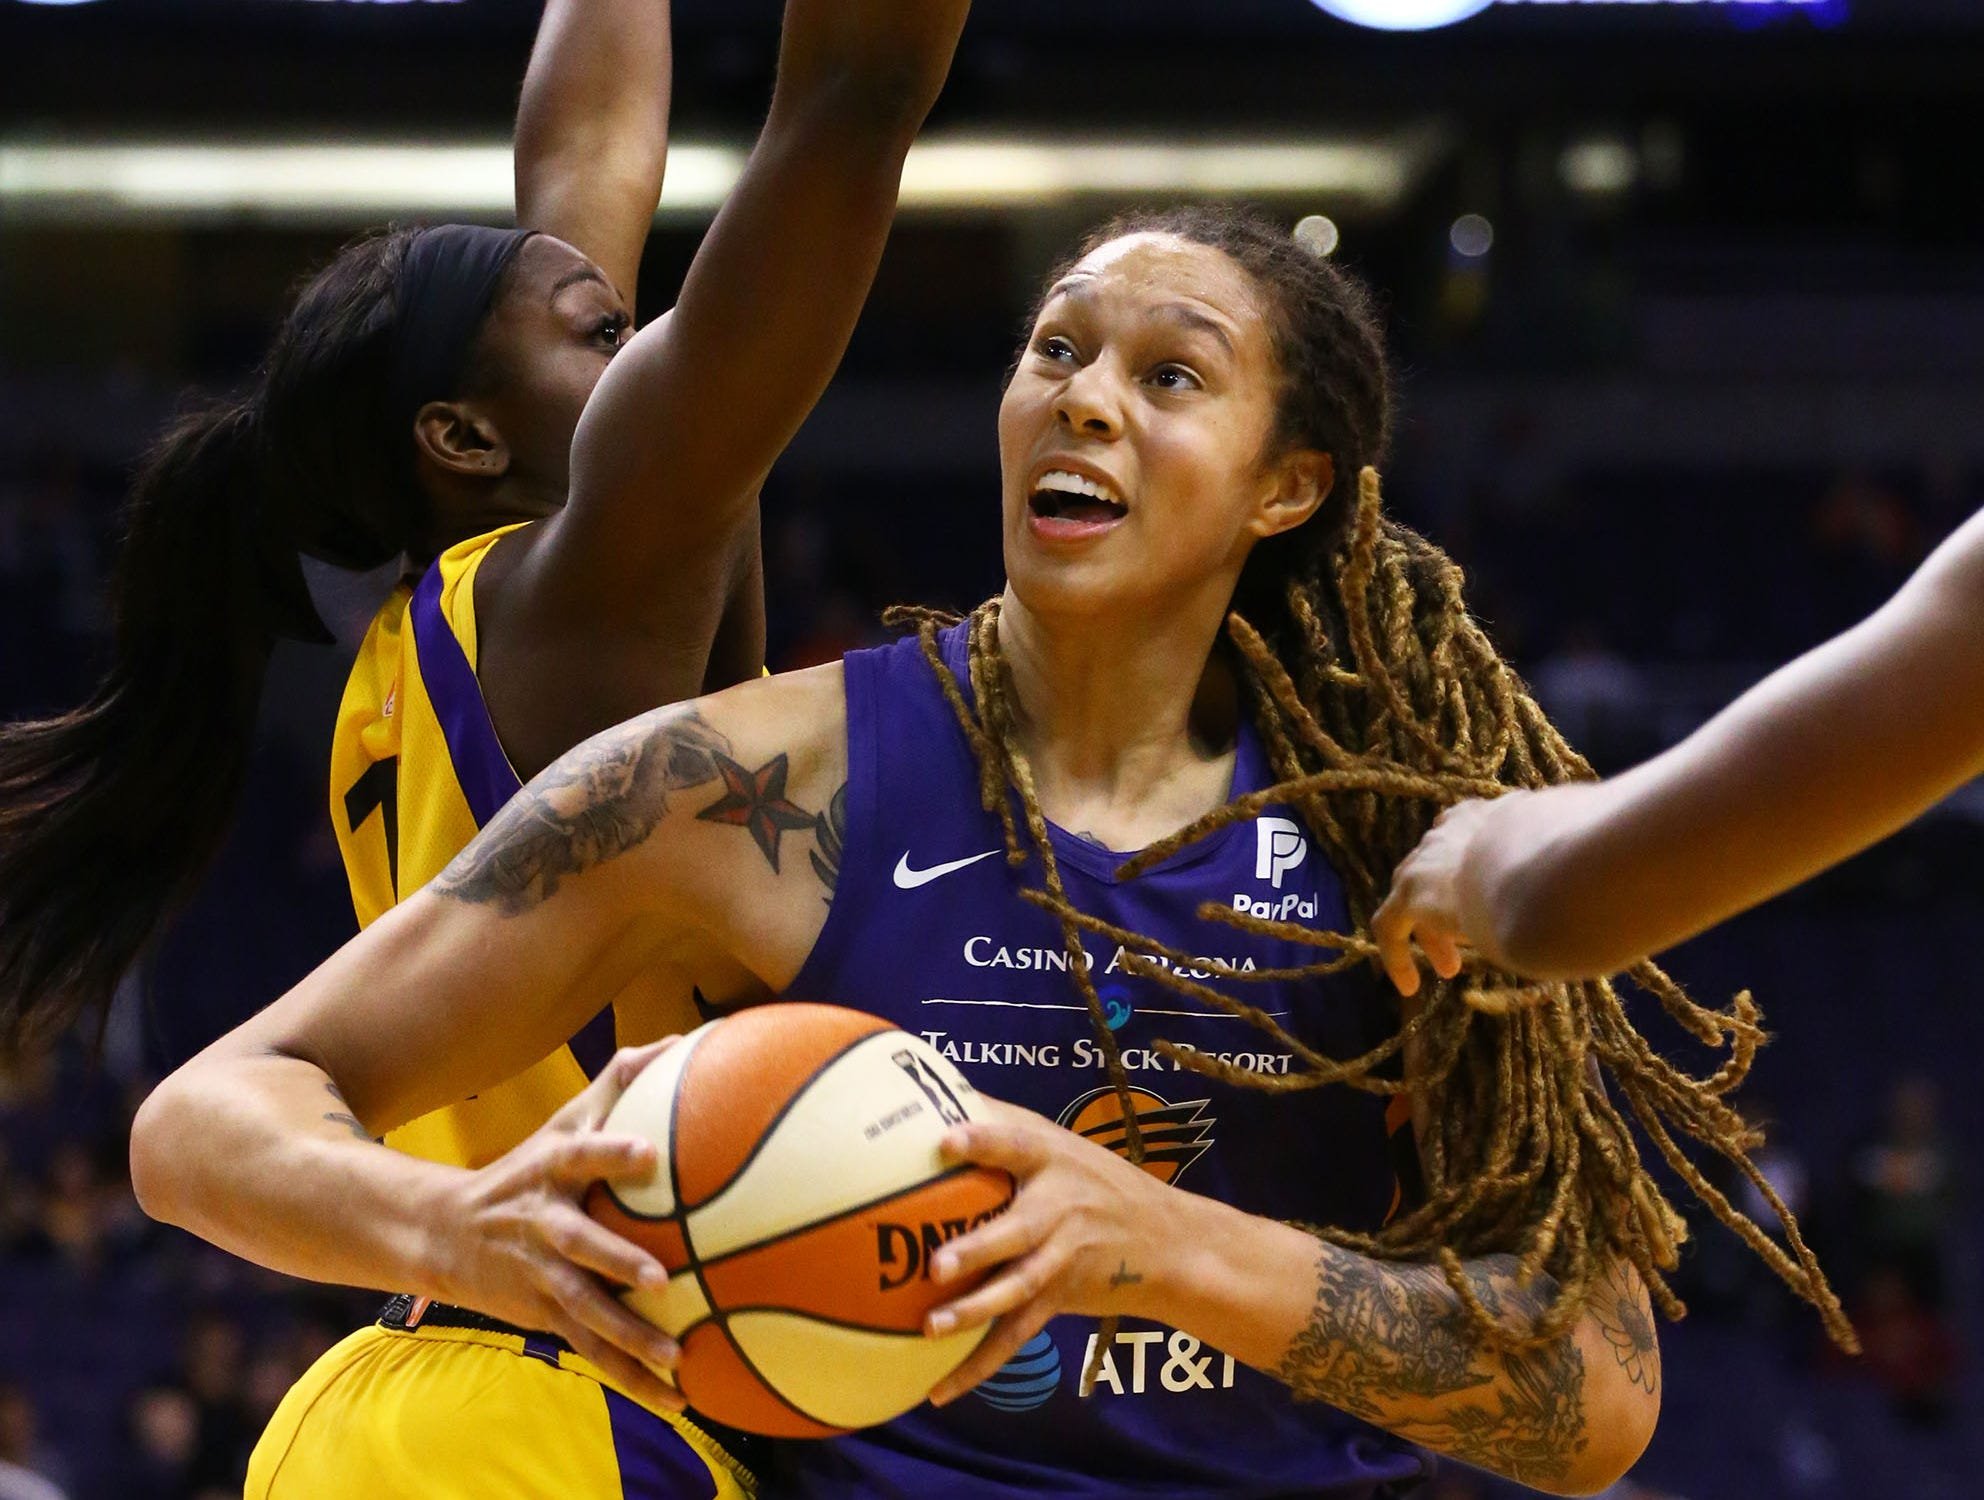 Phoenix Mercury center Brittney Griner drives to the basket against the Los Angeles Sparks in the first half during a preseason game on May 11, 2019 in Phoenix, Ariz.